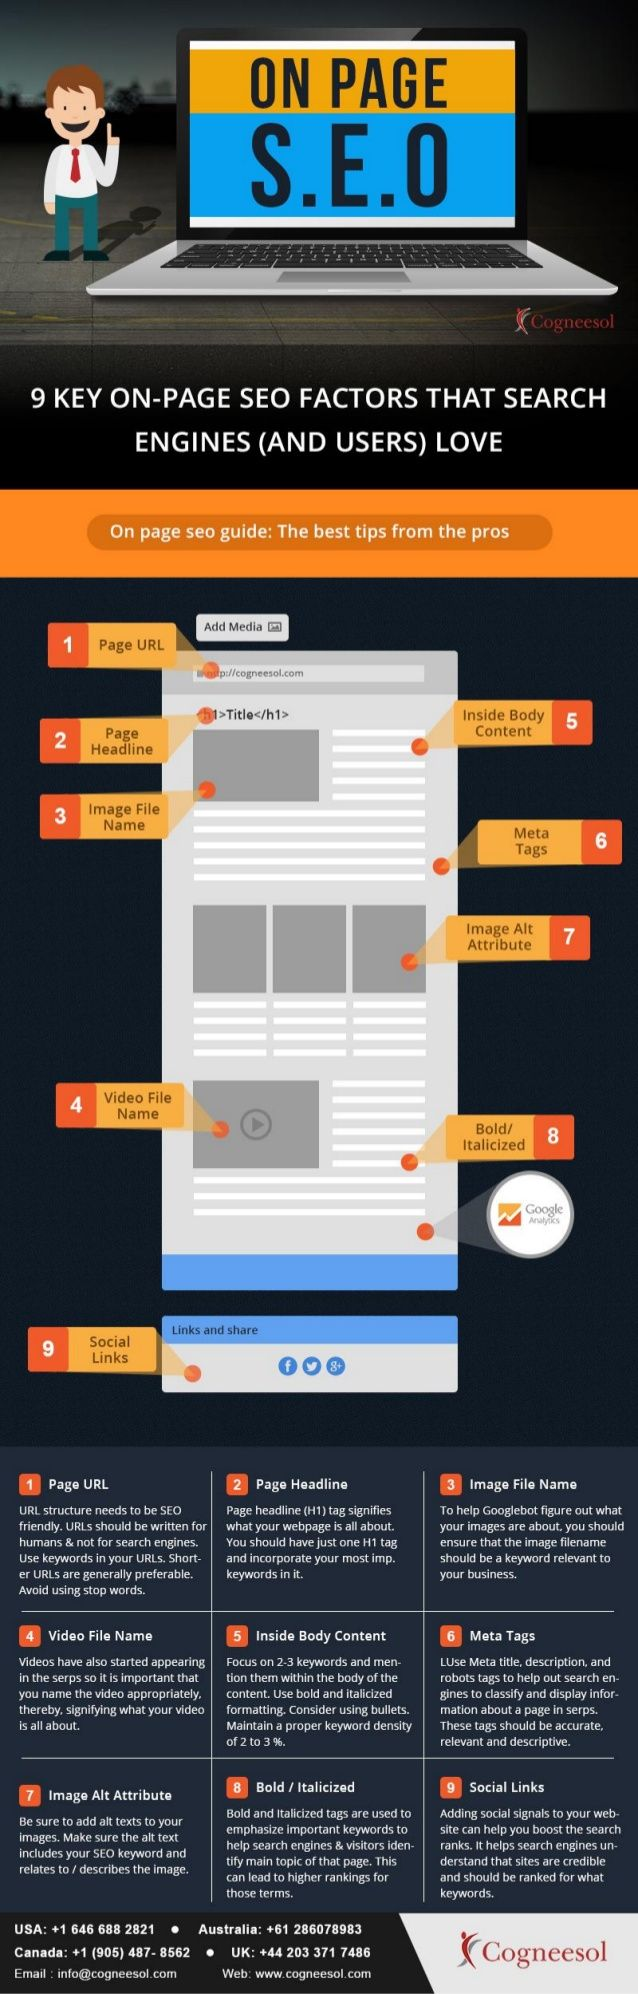 9 Key On Page SEO Factors that Search Engines (and Users) Love